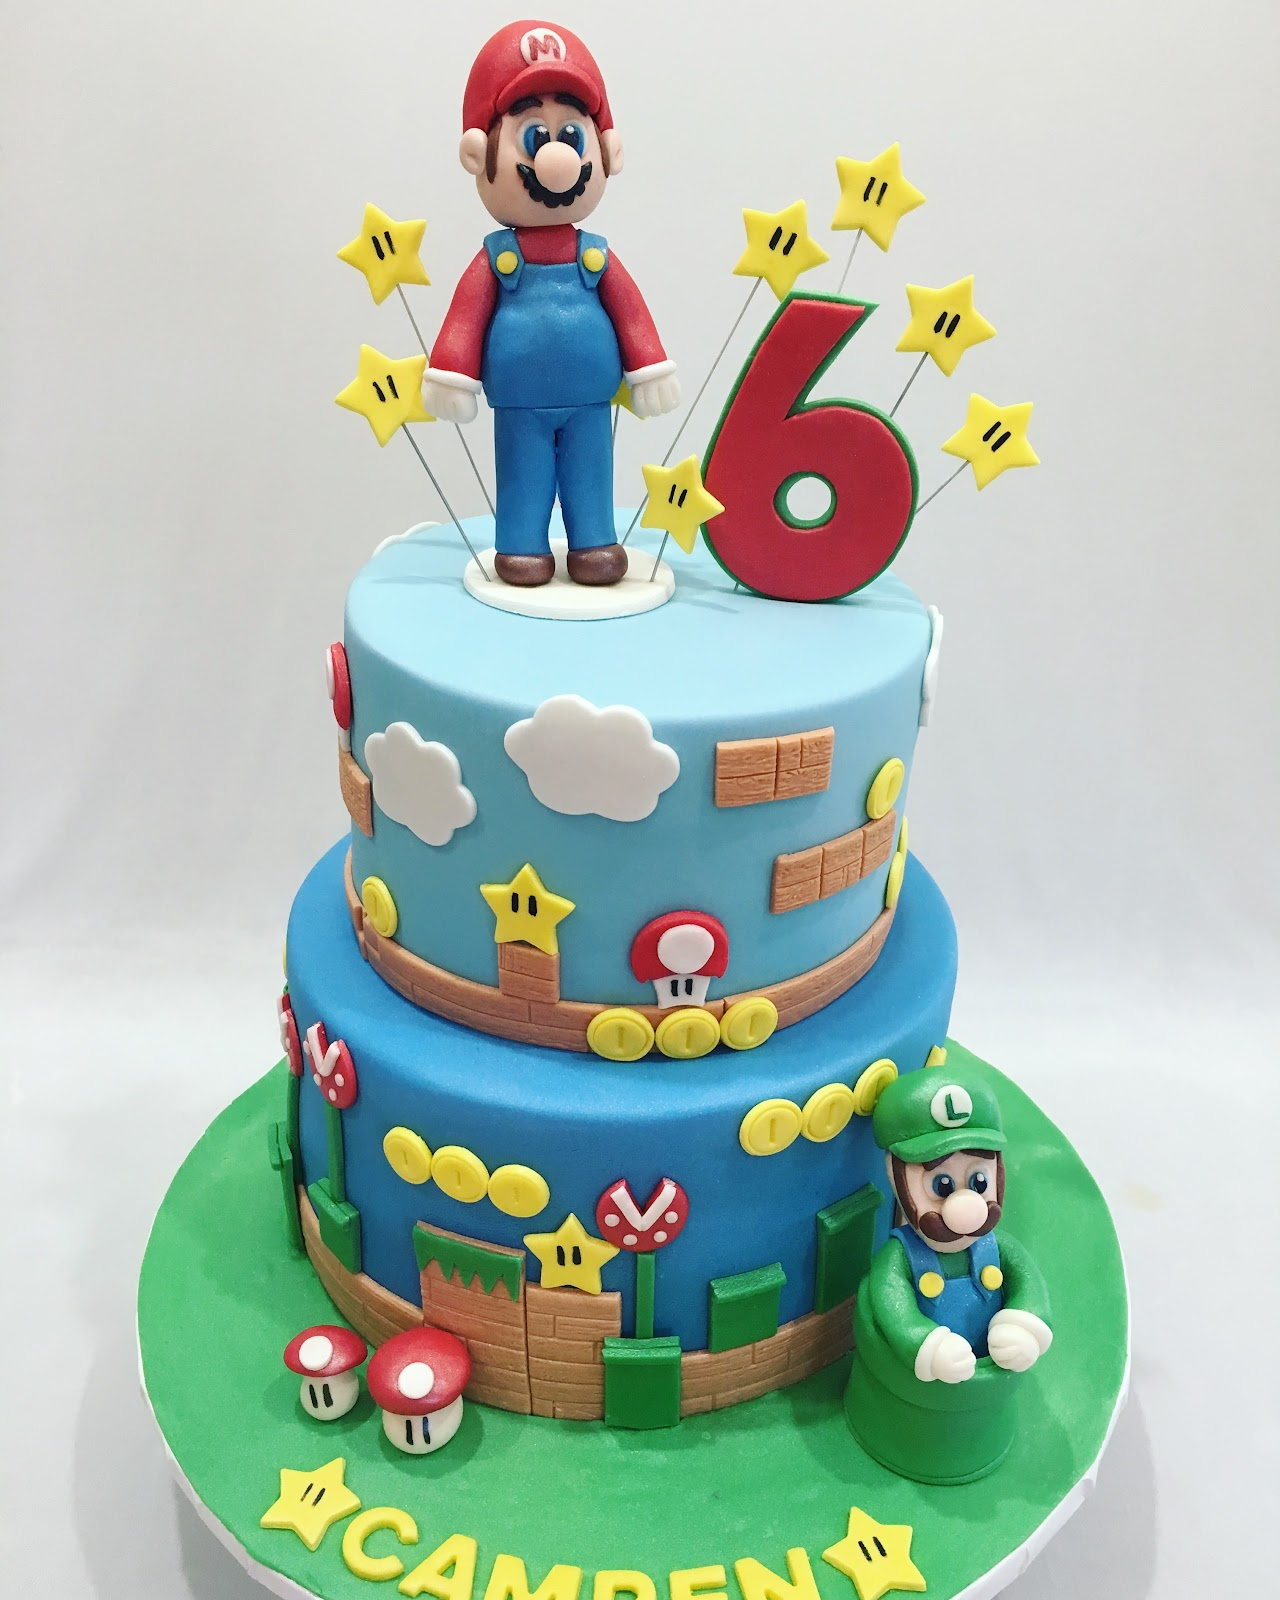 MyMoniCakes Super Mario Brothers cake with Mario and Luigi sculptures